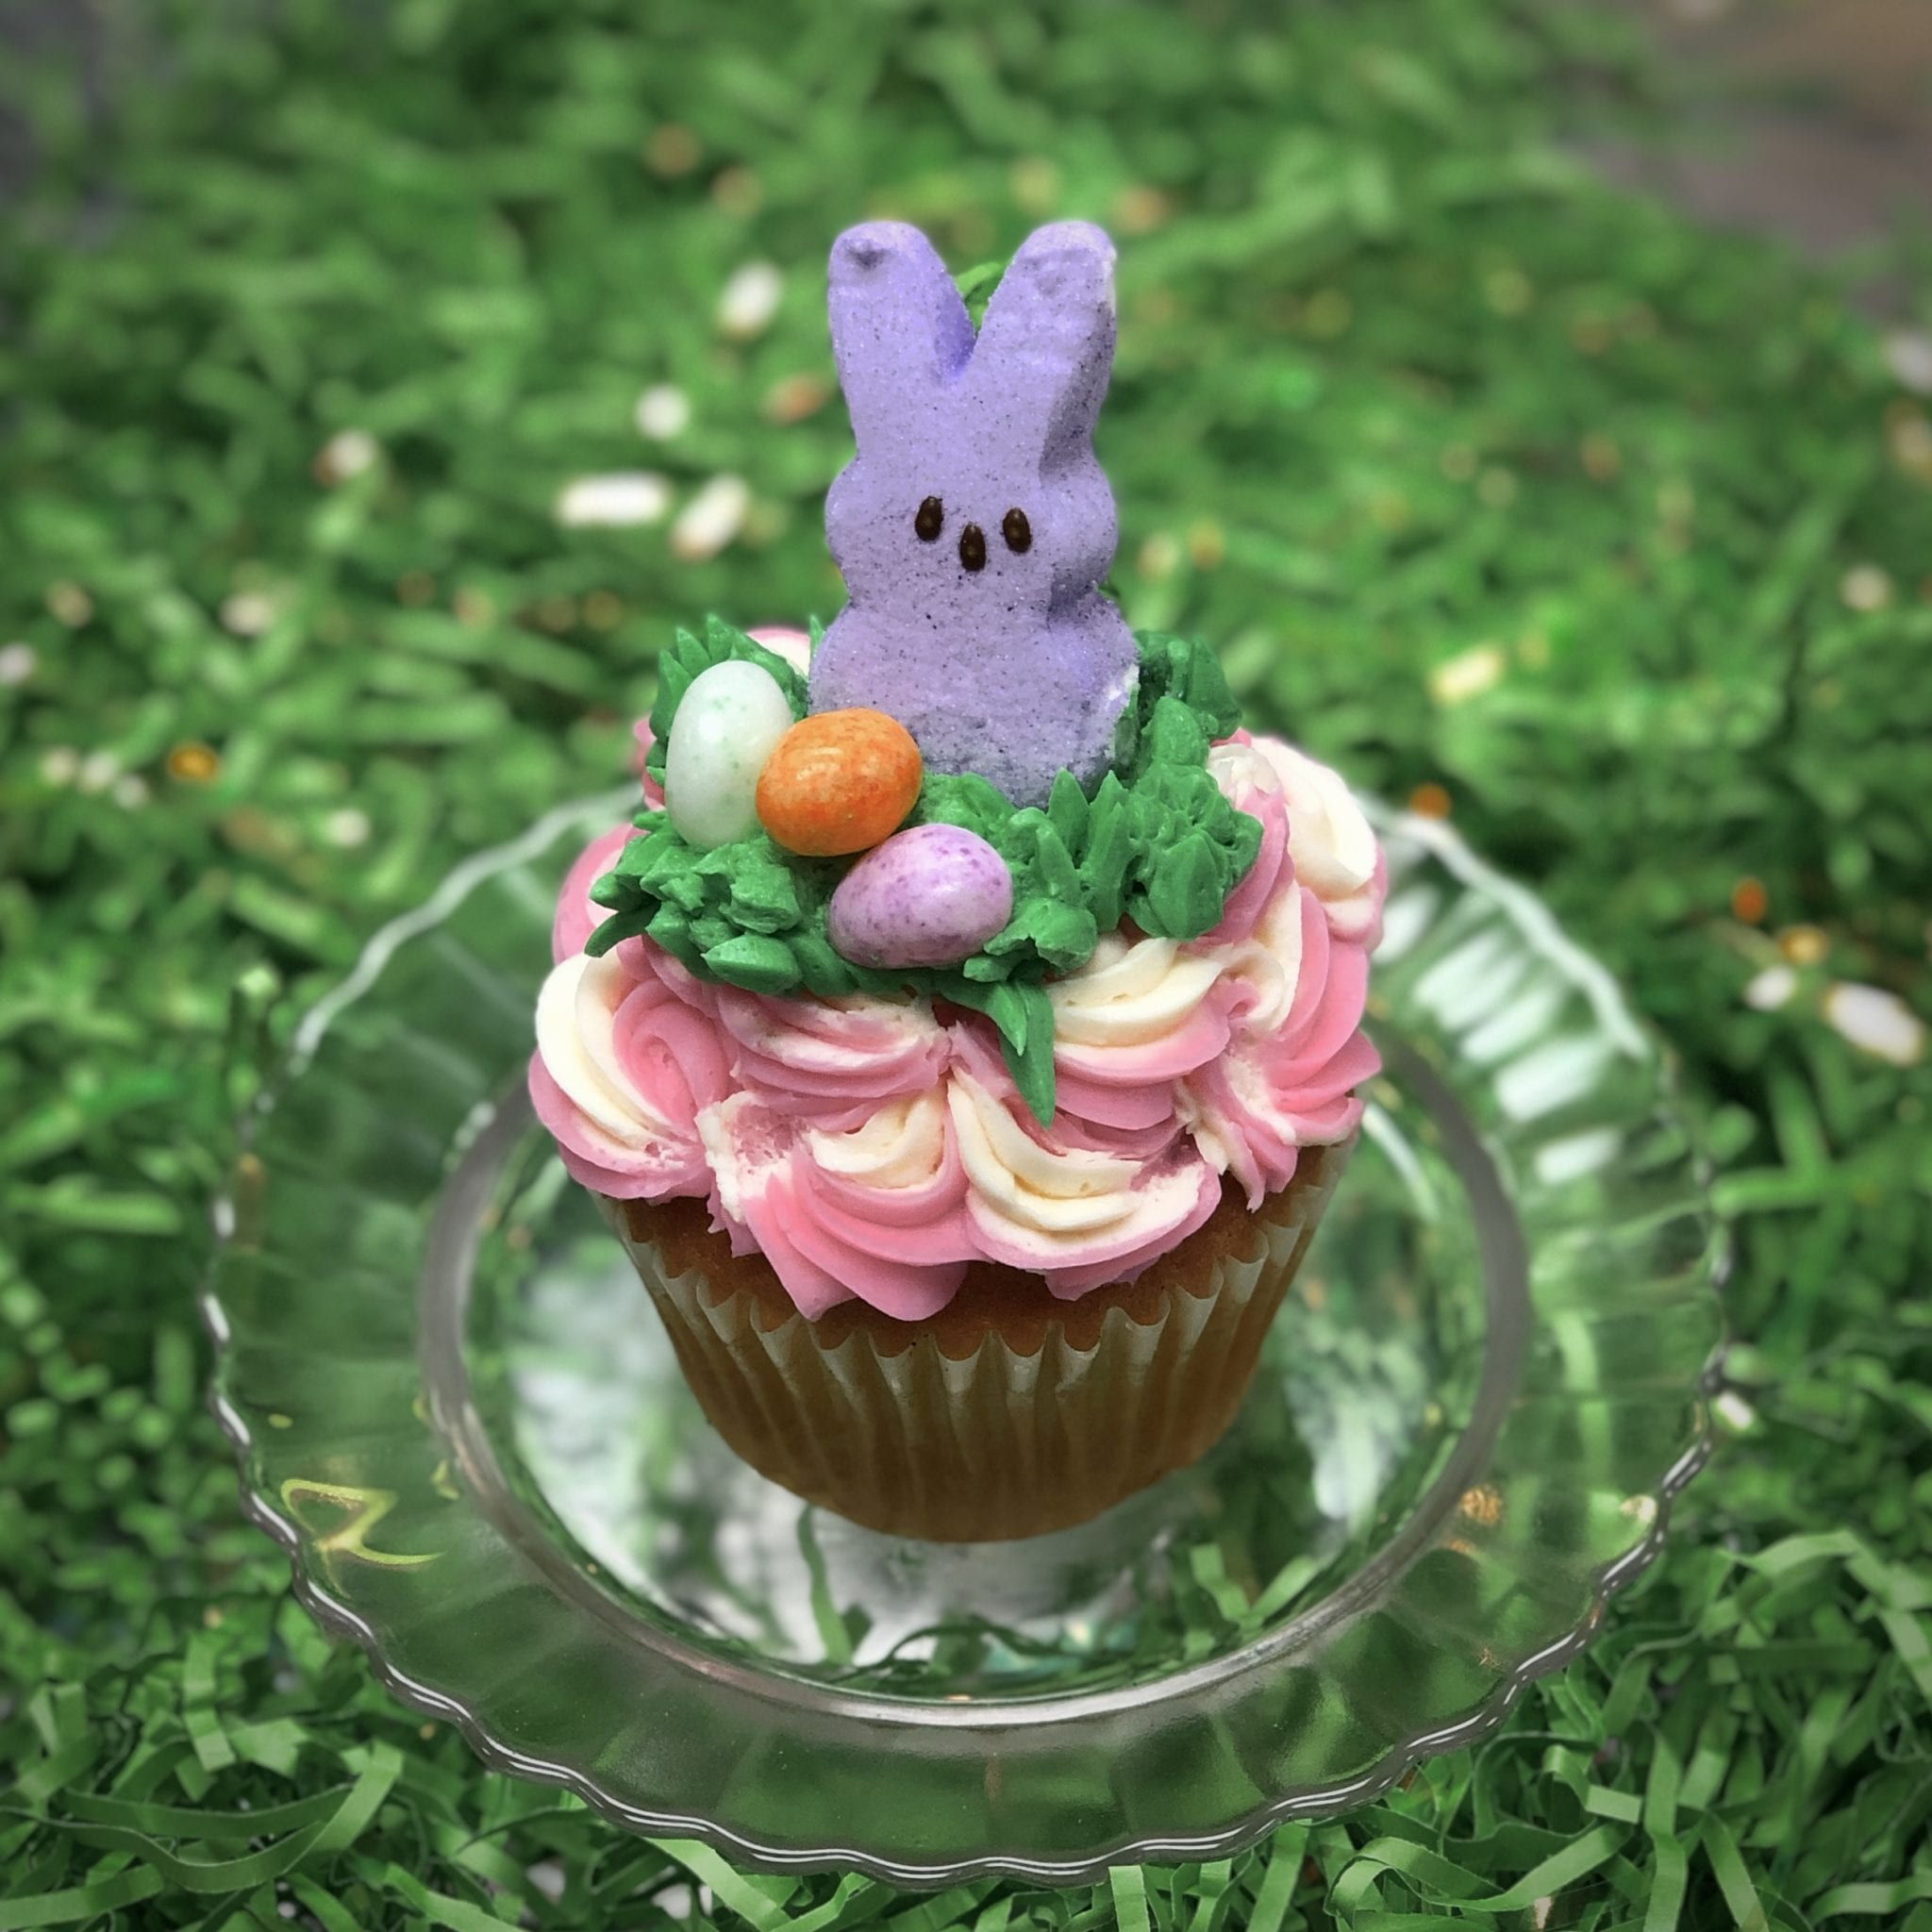 Jilly's Cupcake Bar Announce Easter Cupcake Specials